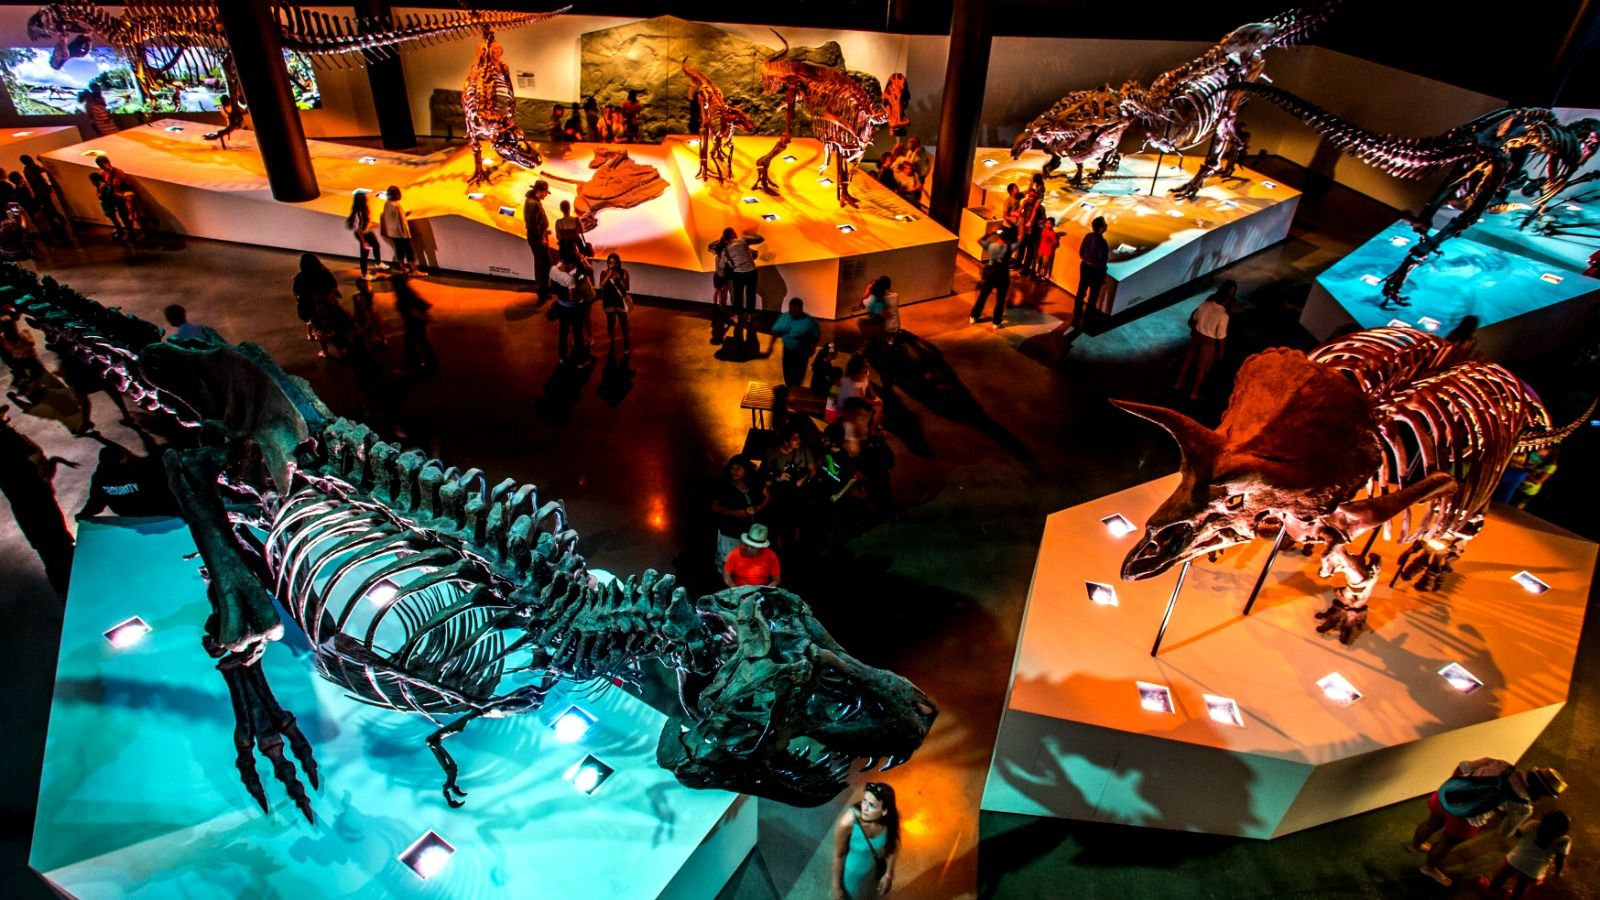 Things to Do in Houston, Texas - Houston Museum of Natural Science